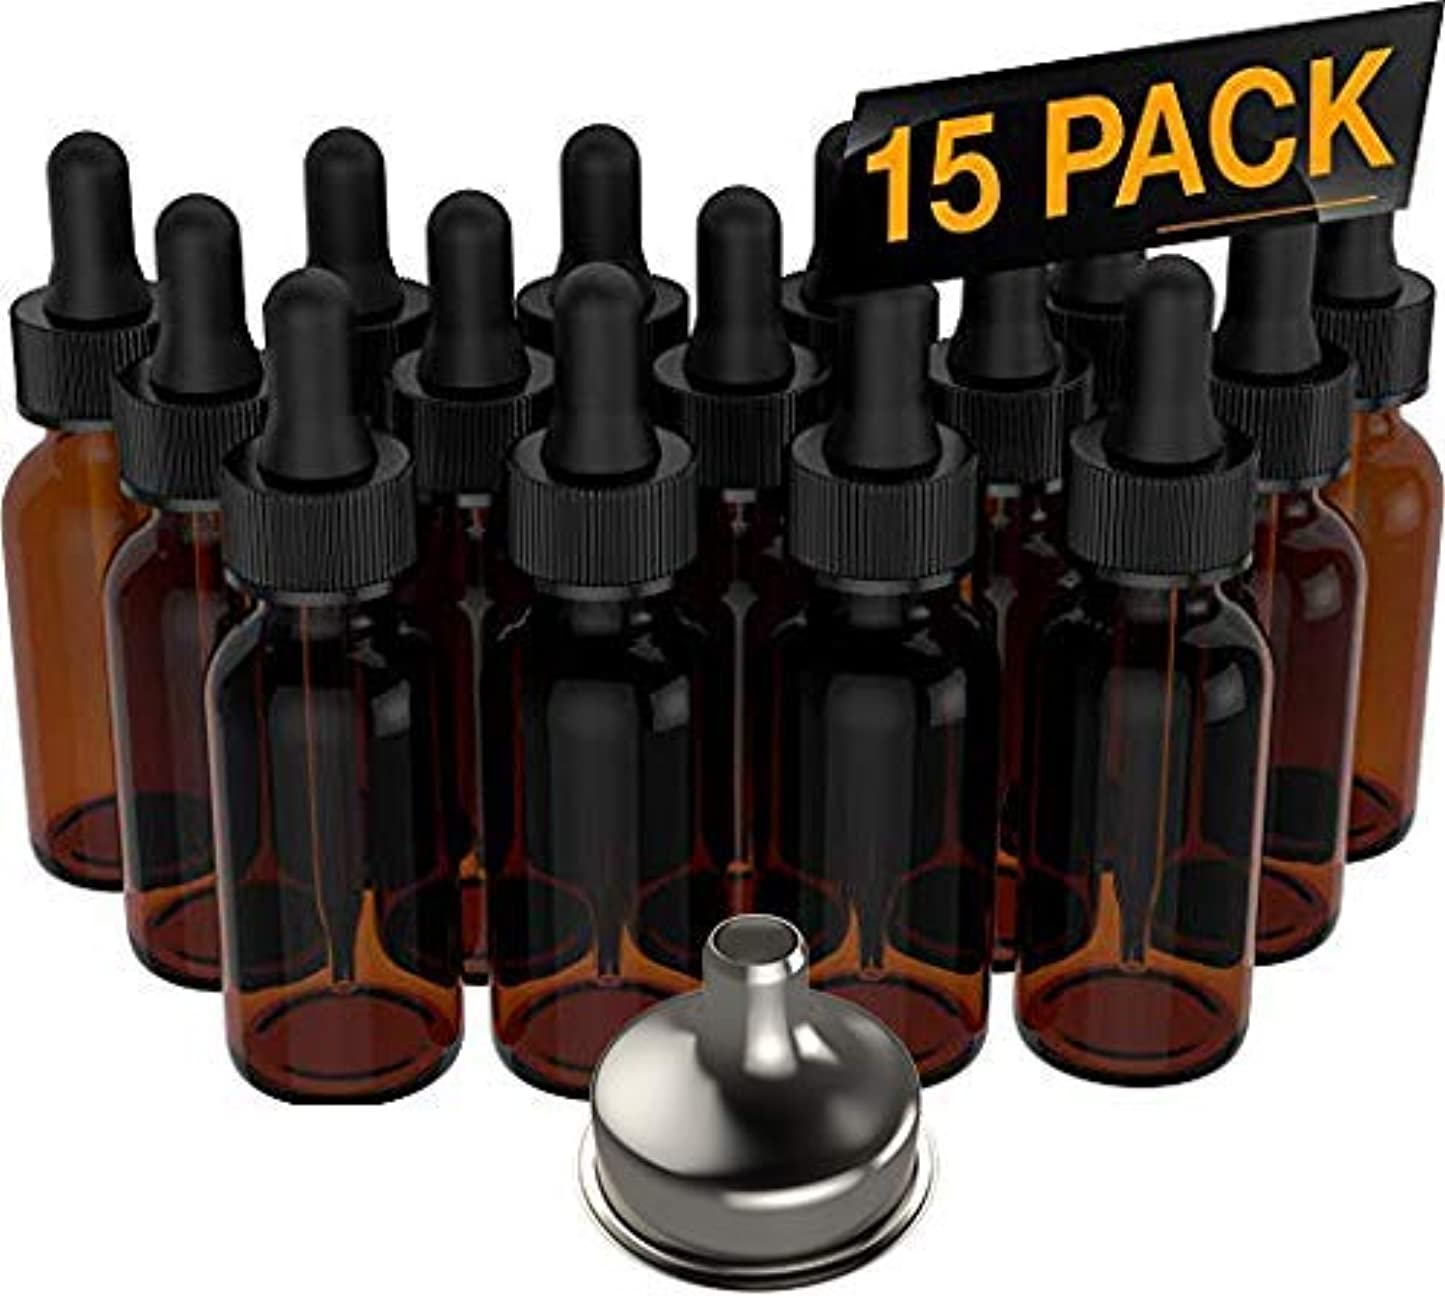 ヒステリック特異なミリメートル15 Pack Essential Oil Bottles - Round Boston Empty Refillable Amber Bottle with Glass Dropper [ Free Stainless Steel Funnel ] for Liquid Aromatherapy Fragrance Lot - (1 oz) 30ml [並行輸入品]